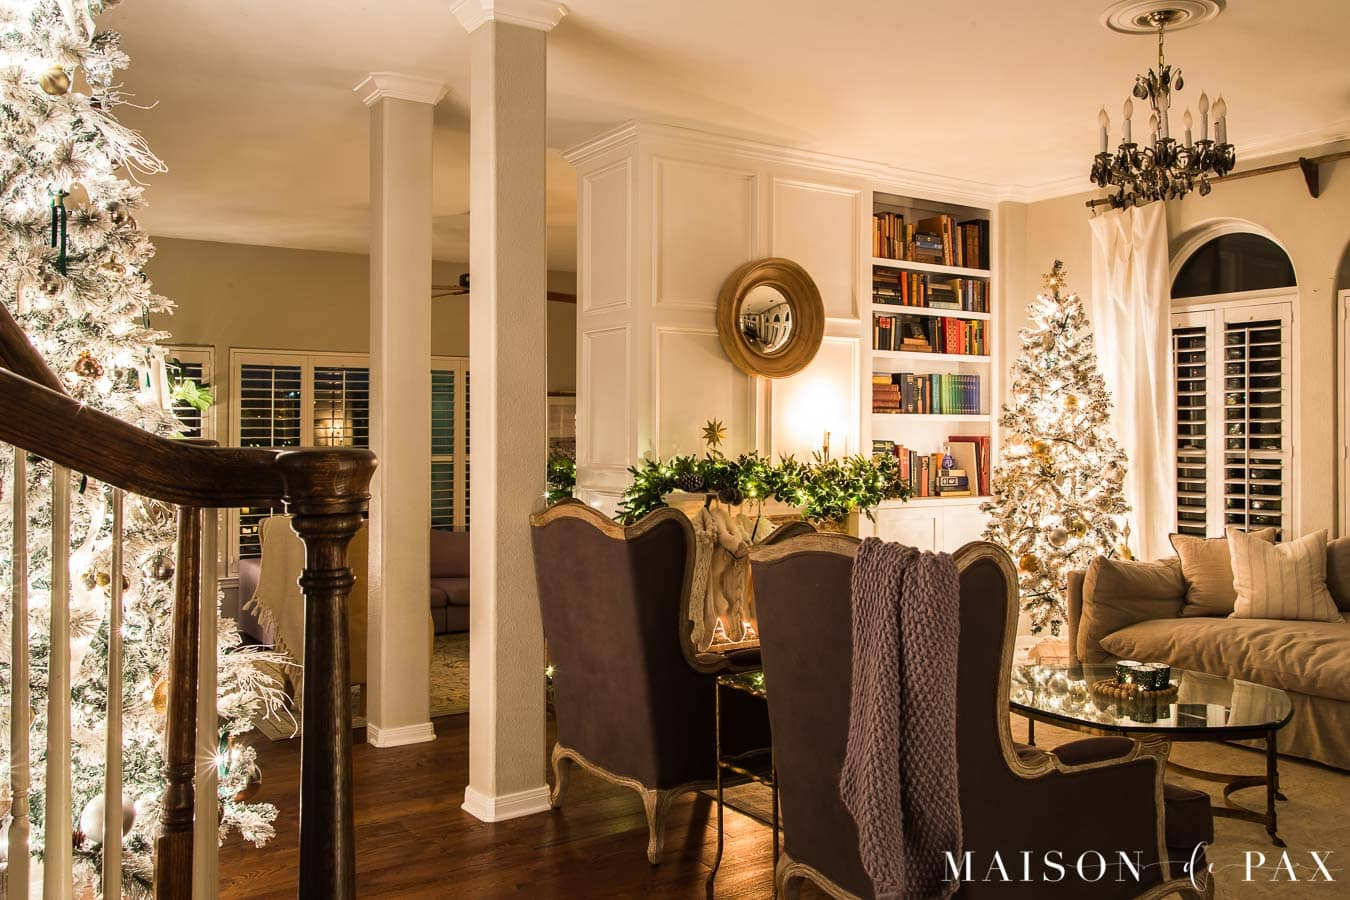 Living room with two Christmas trees and a fireplace decorated with garland | Maison de Pax